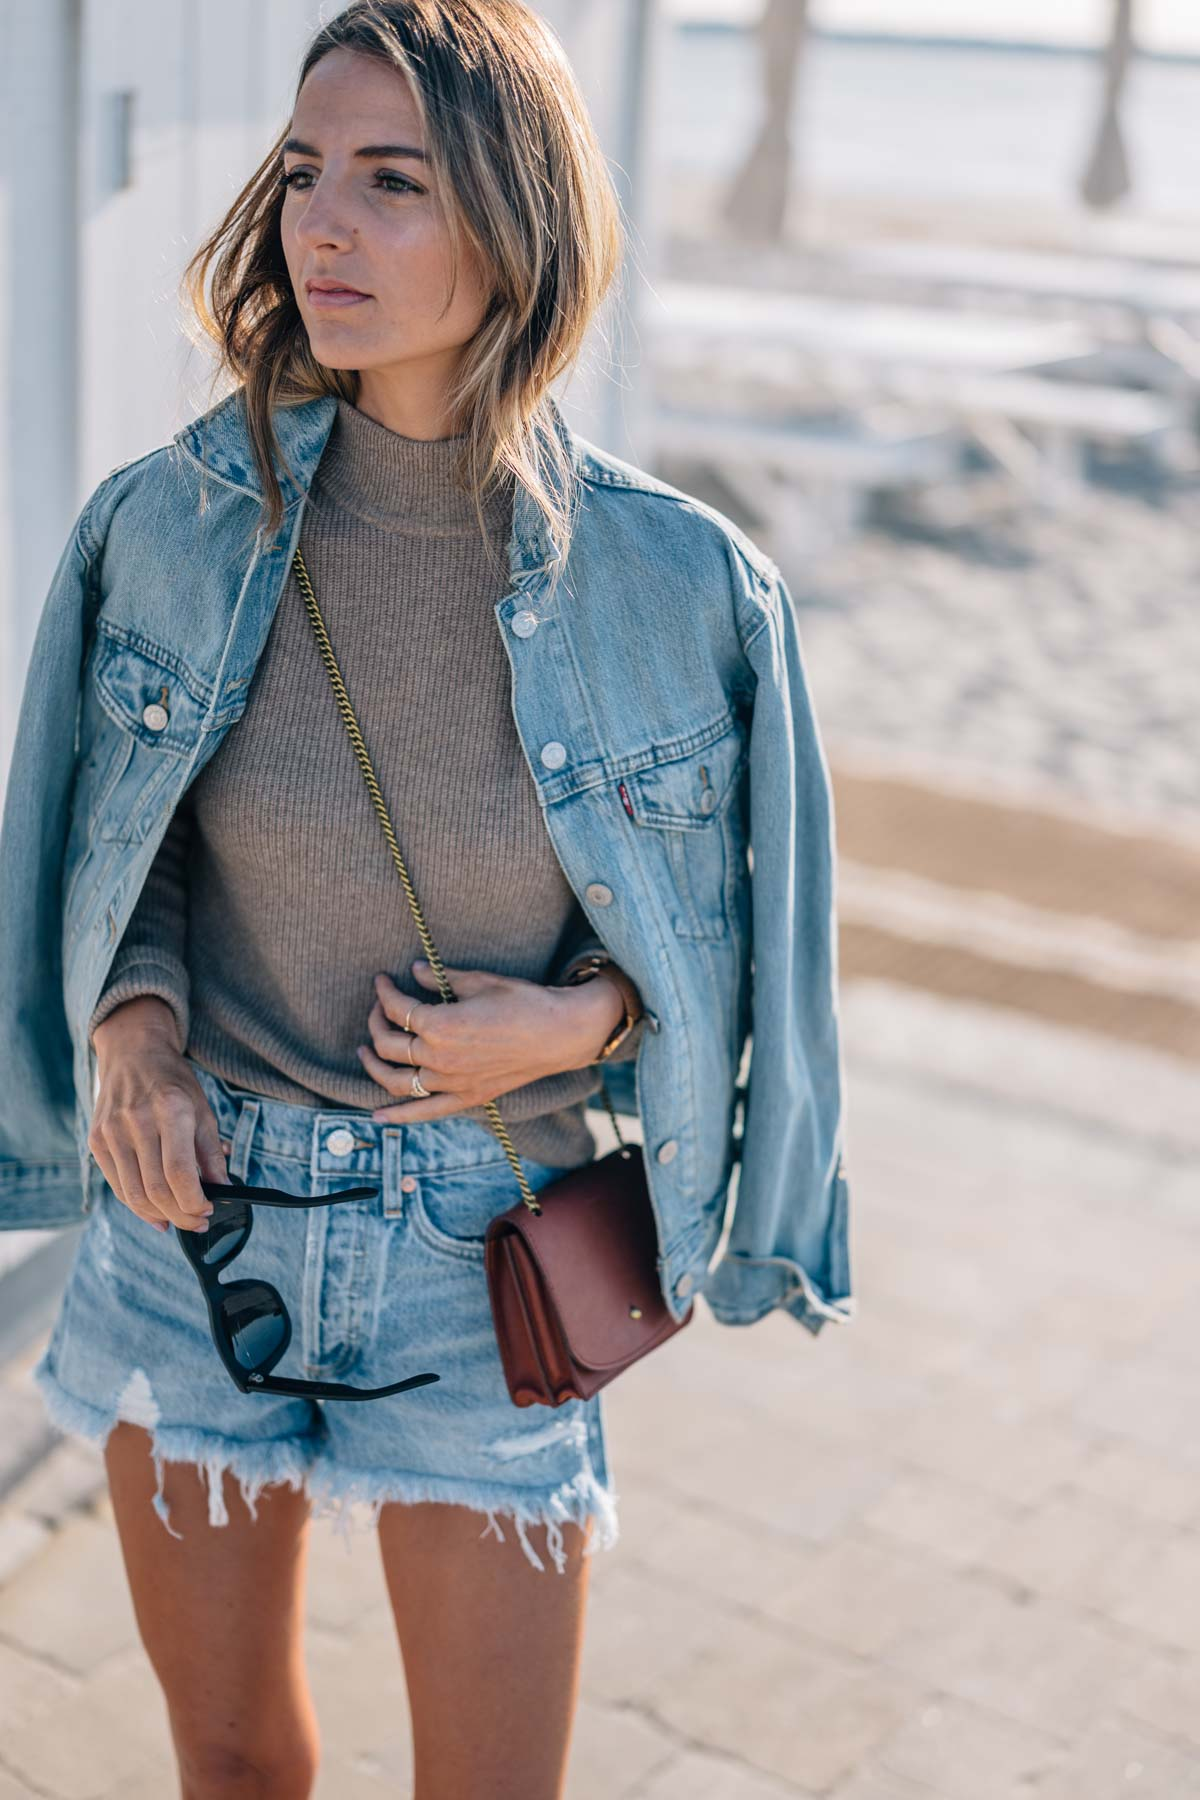 Jess Kirby shares transitional summer to fall style in a jean jacket, denim shorts and Velvet Bailee cashmere mock neck sweater